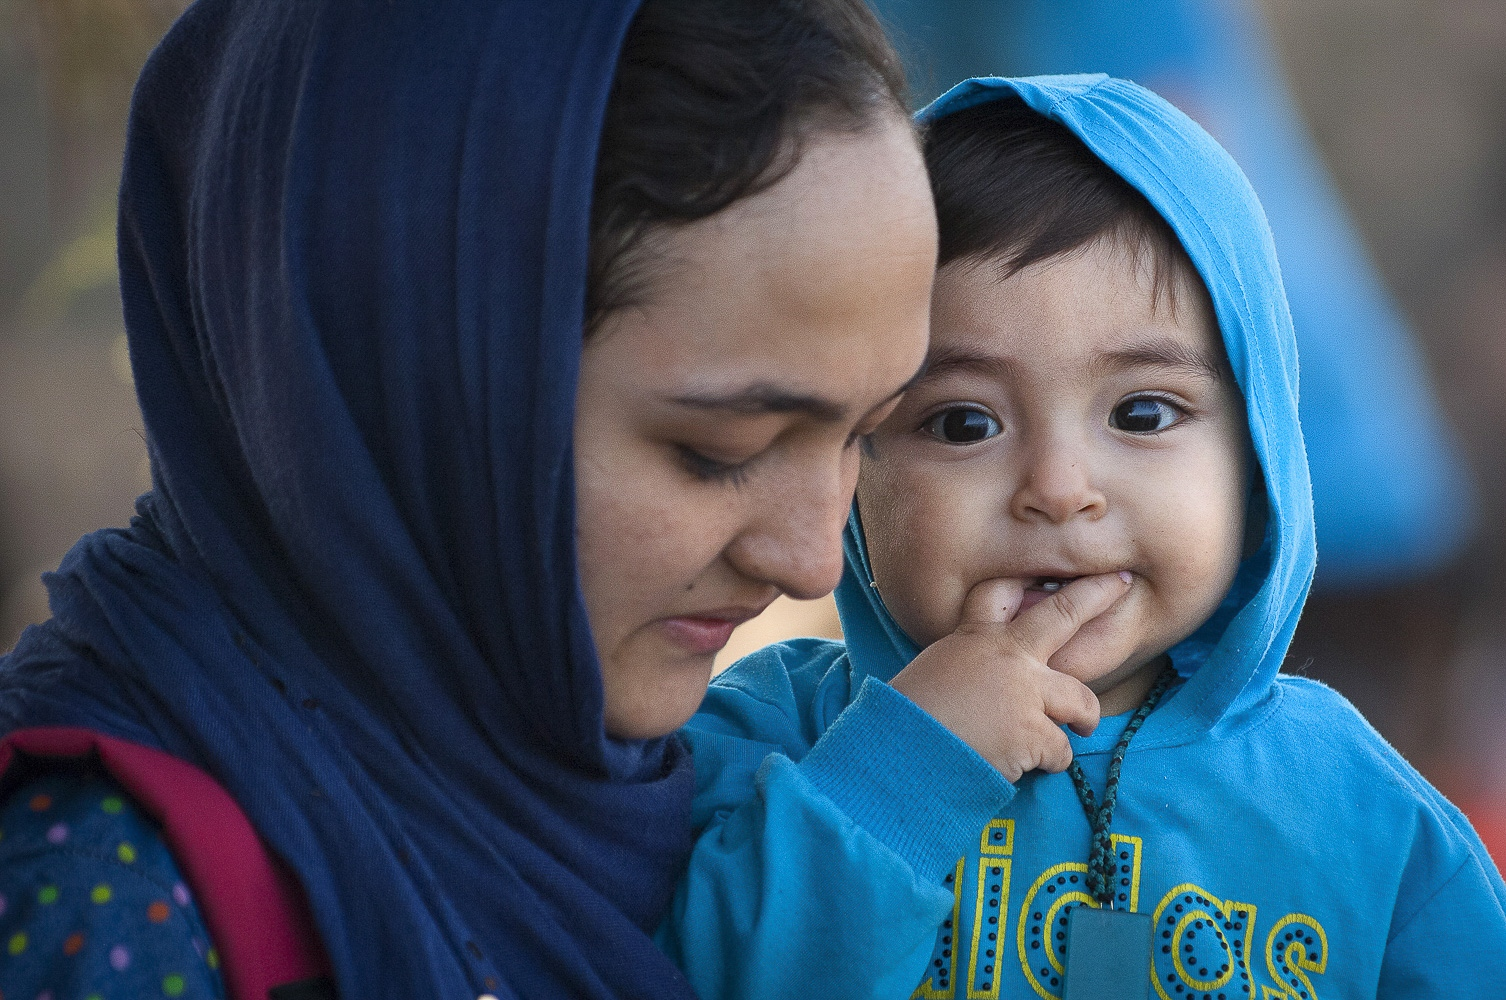 An Afghan woman with her child after their safe arrival near Molivos, Greece.